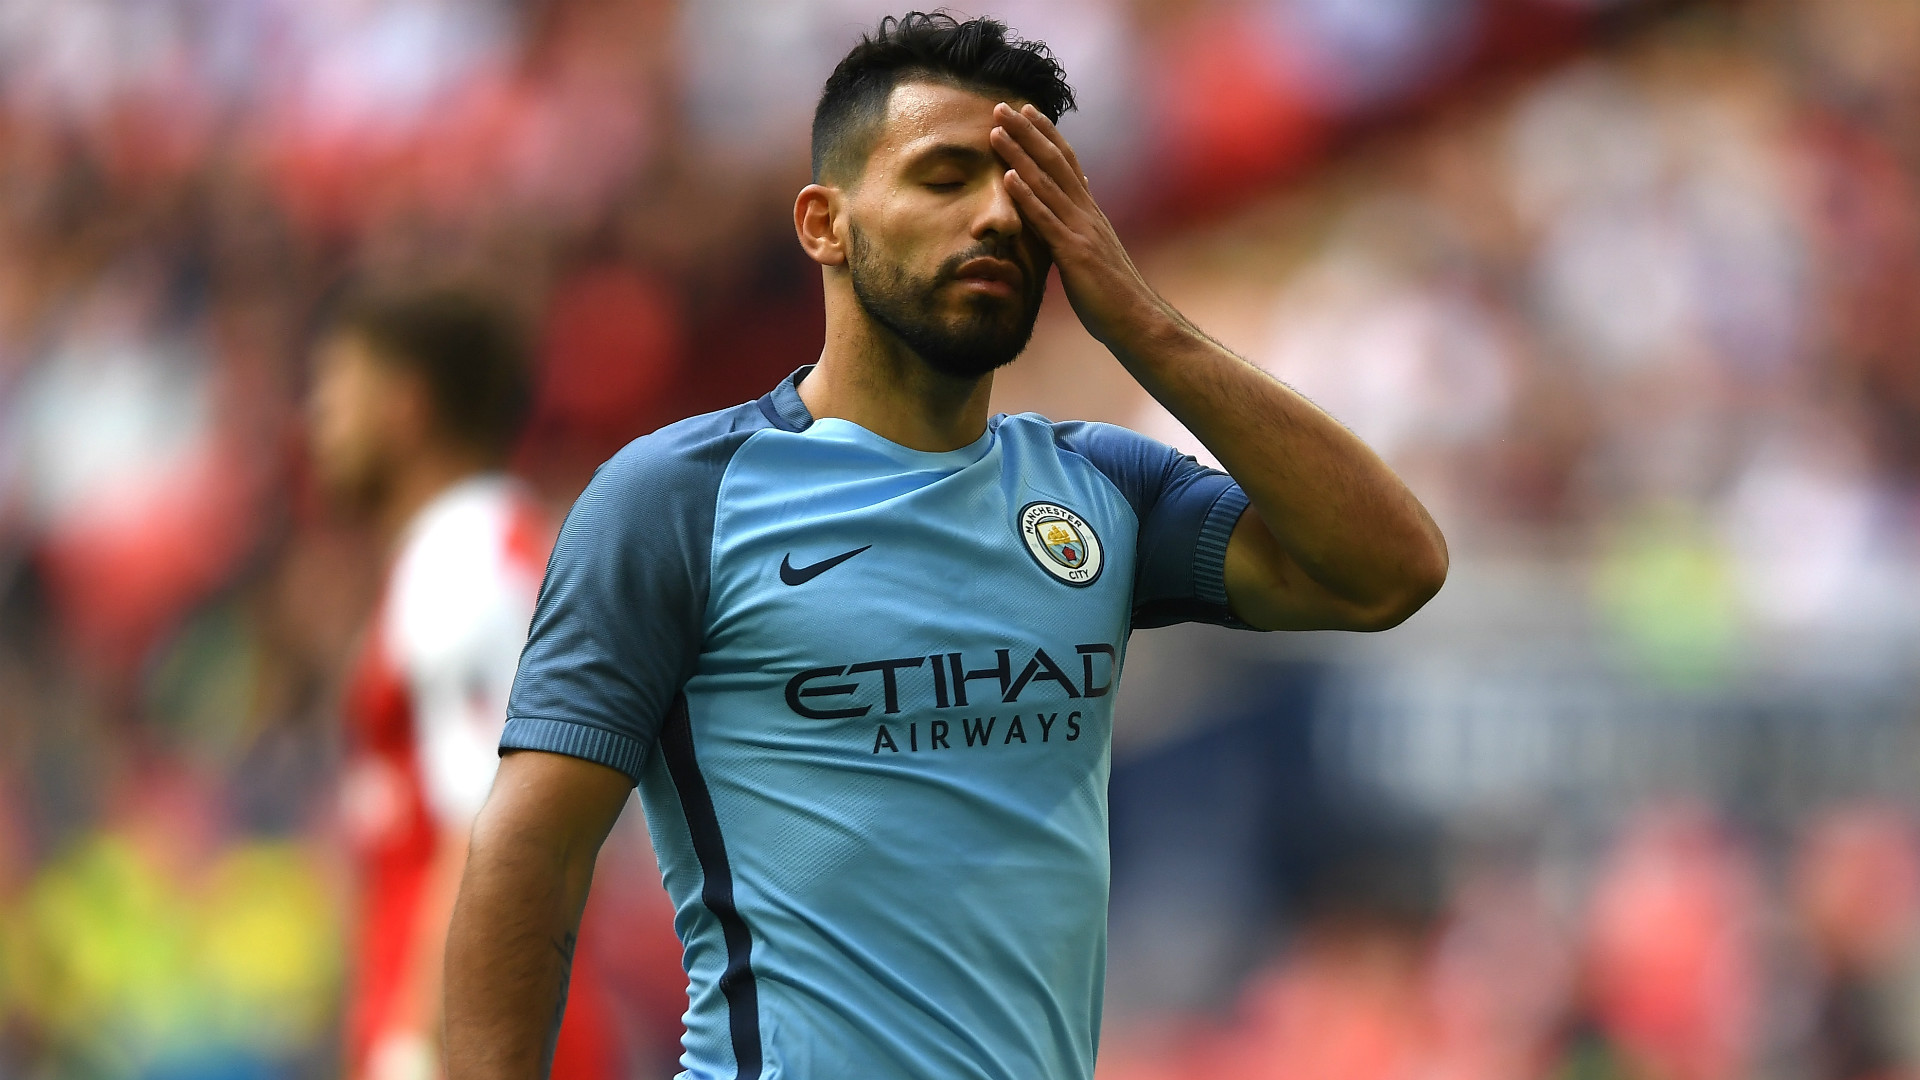 'He is happy and will remain' - Aguero's agent says he will stay at Man City